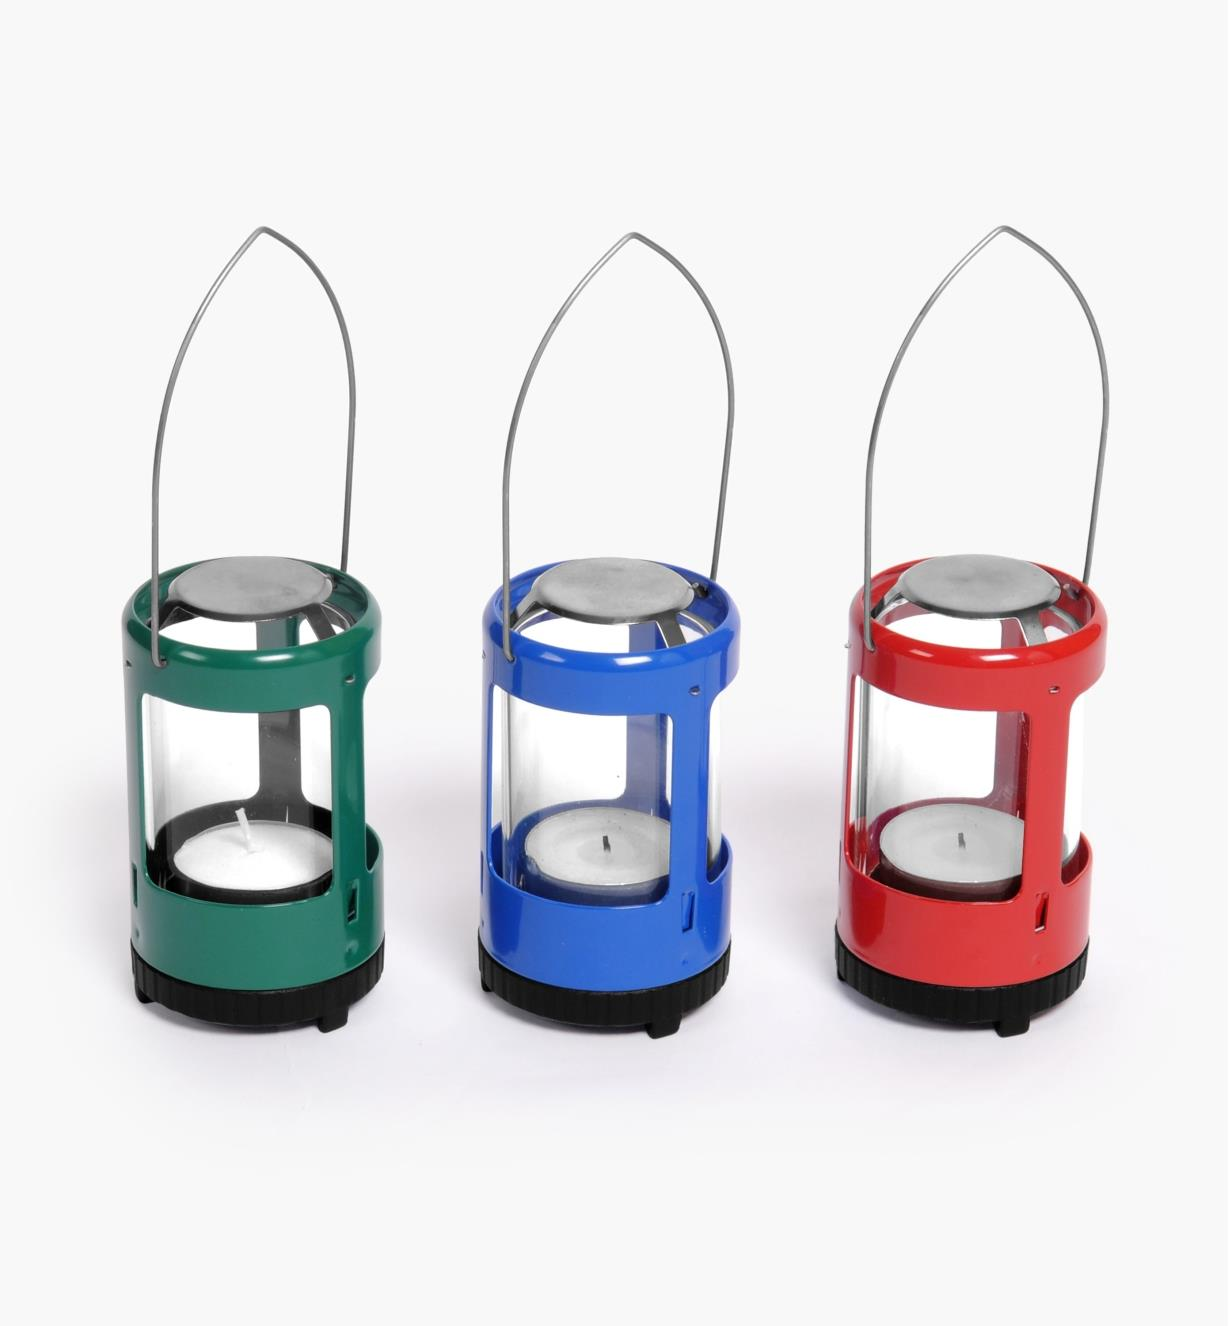 GB315 - Miniature Candle Lantern, assorted colors (store only)